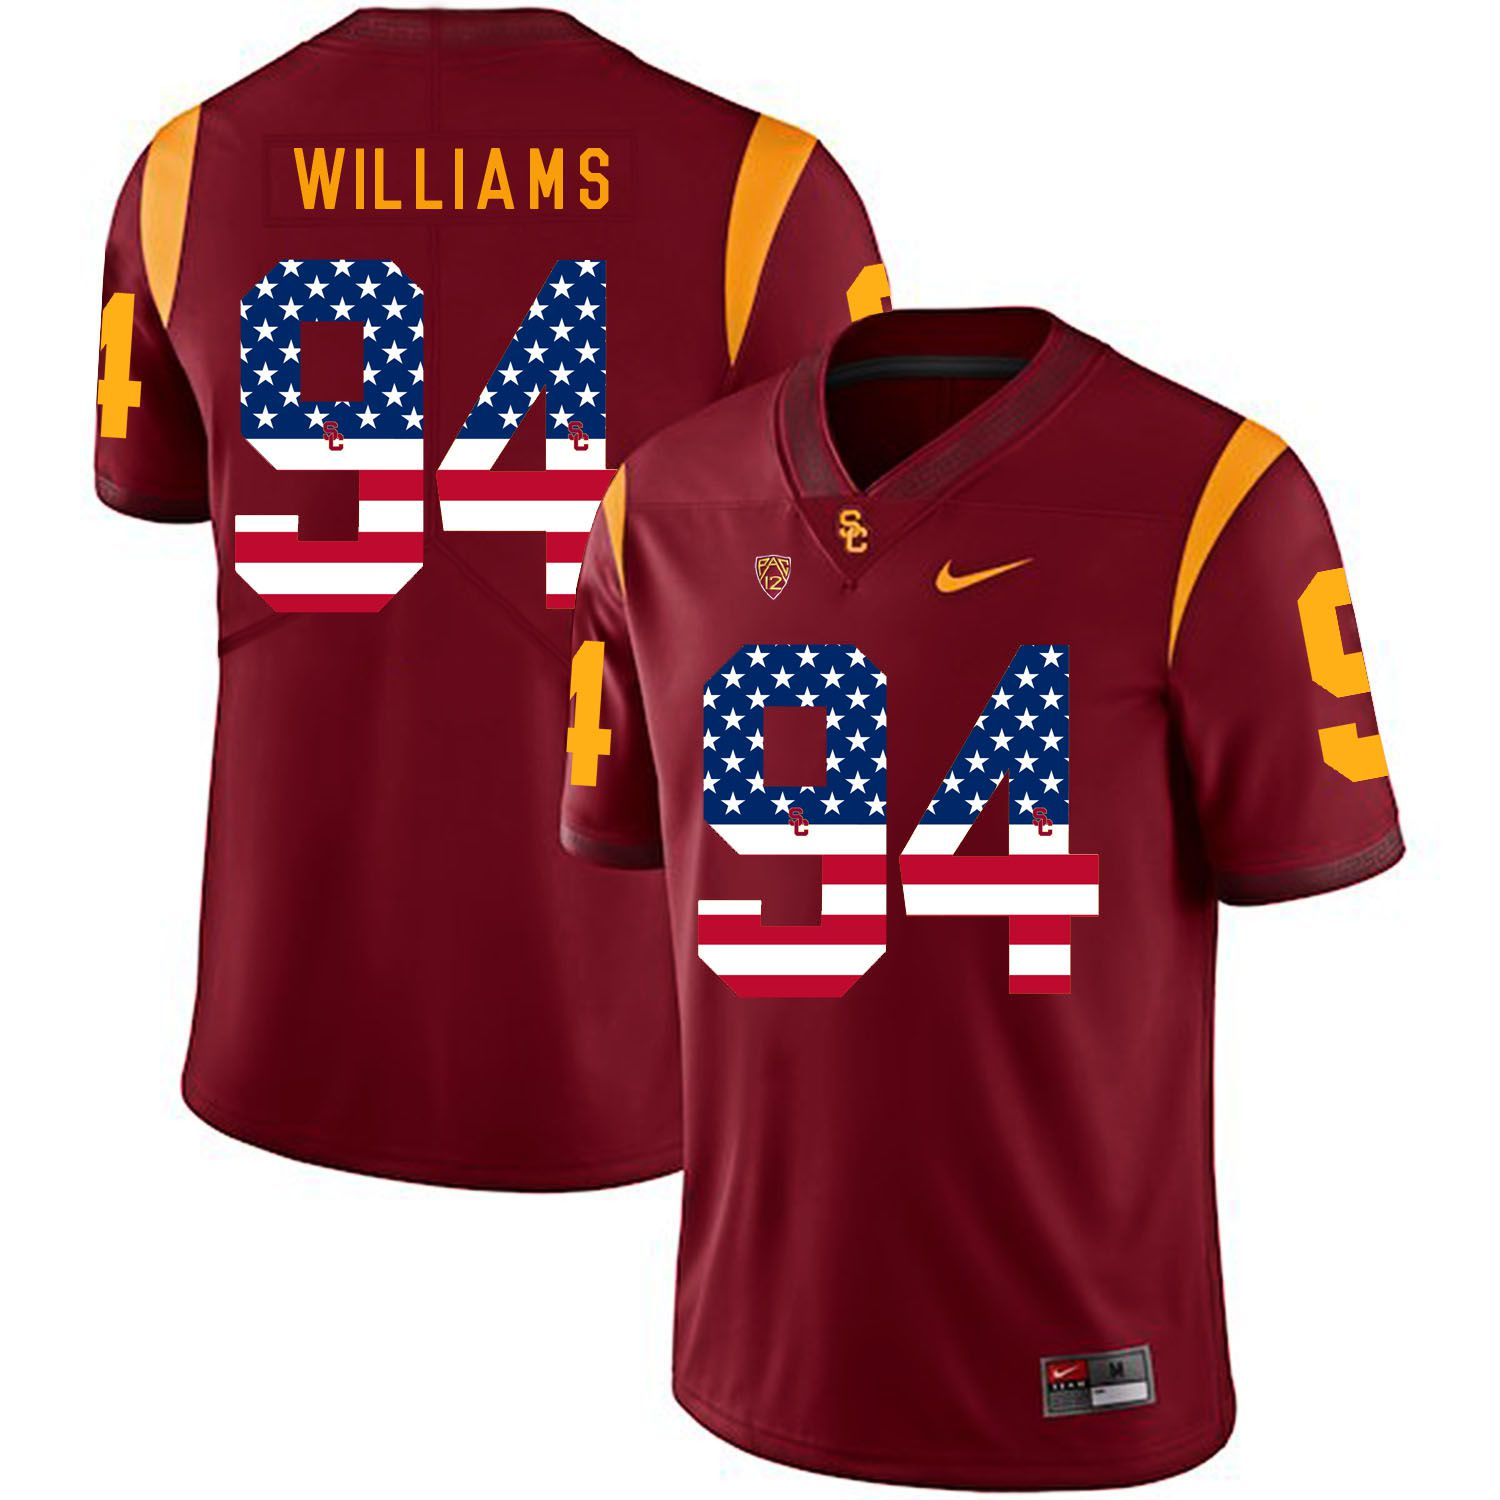 Men USC Trojans 94 Williams Red Flag Customized NCAA Jerseys